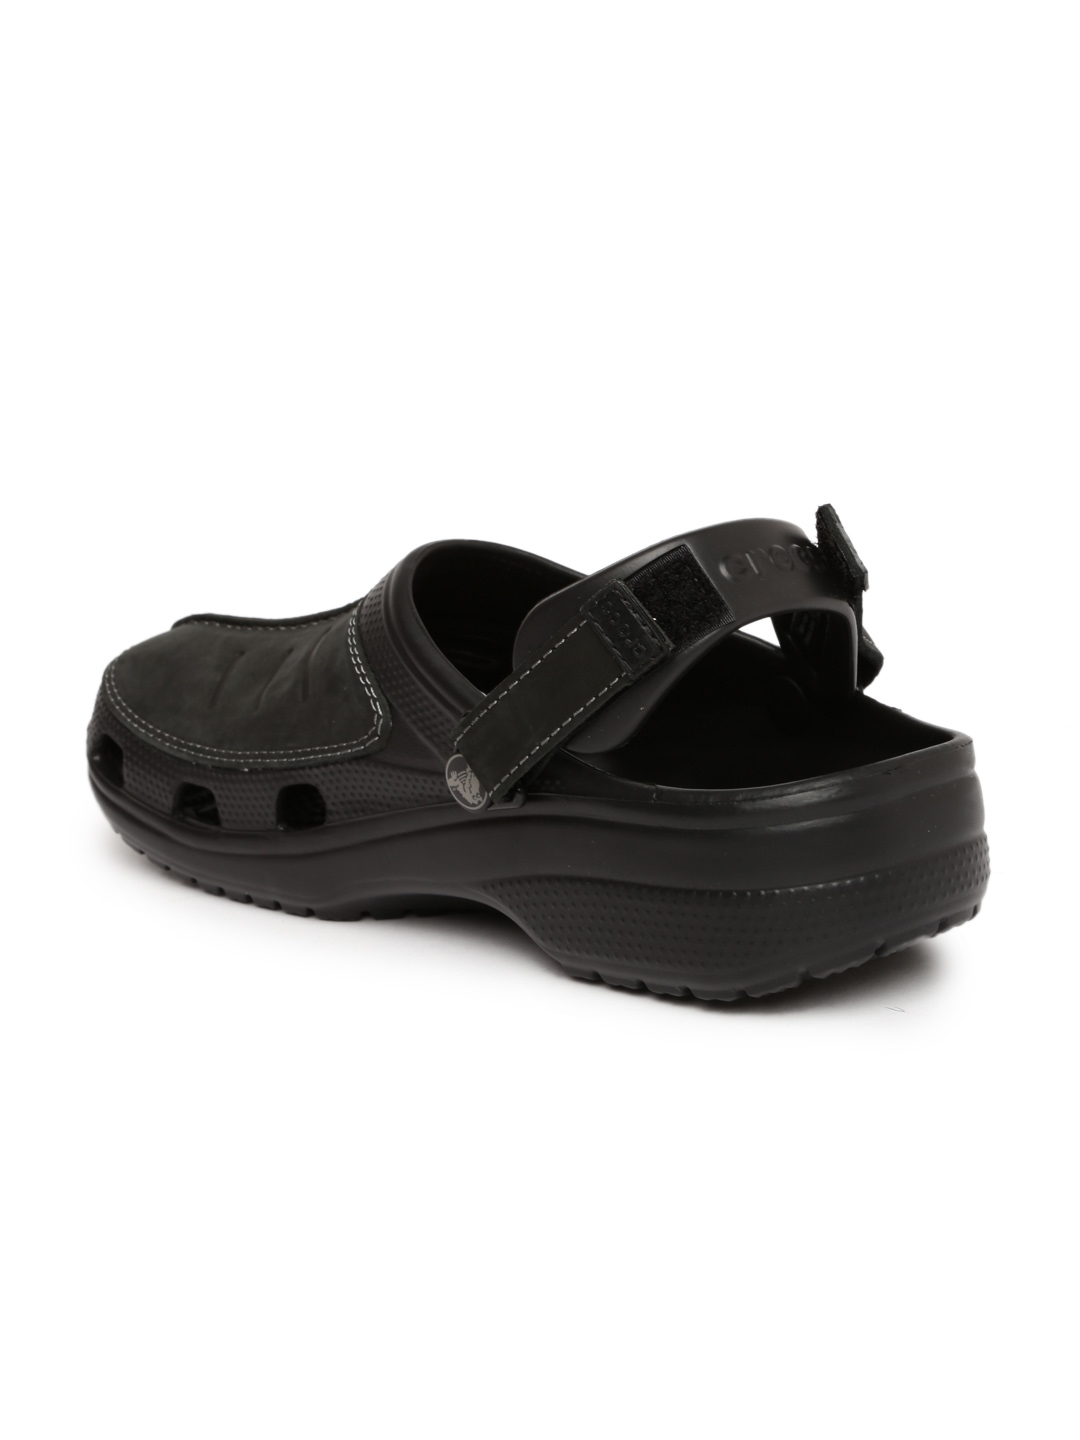 41695b9ff5f4 Buy Crocs Men Black Yukon Mesa Clogs - Flip Flops for Men 1658945 ...